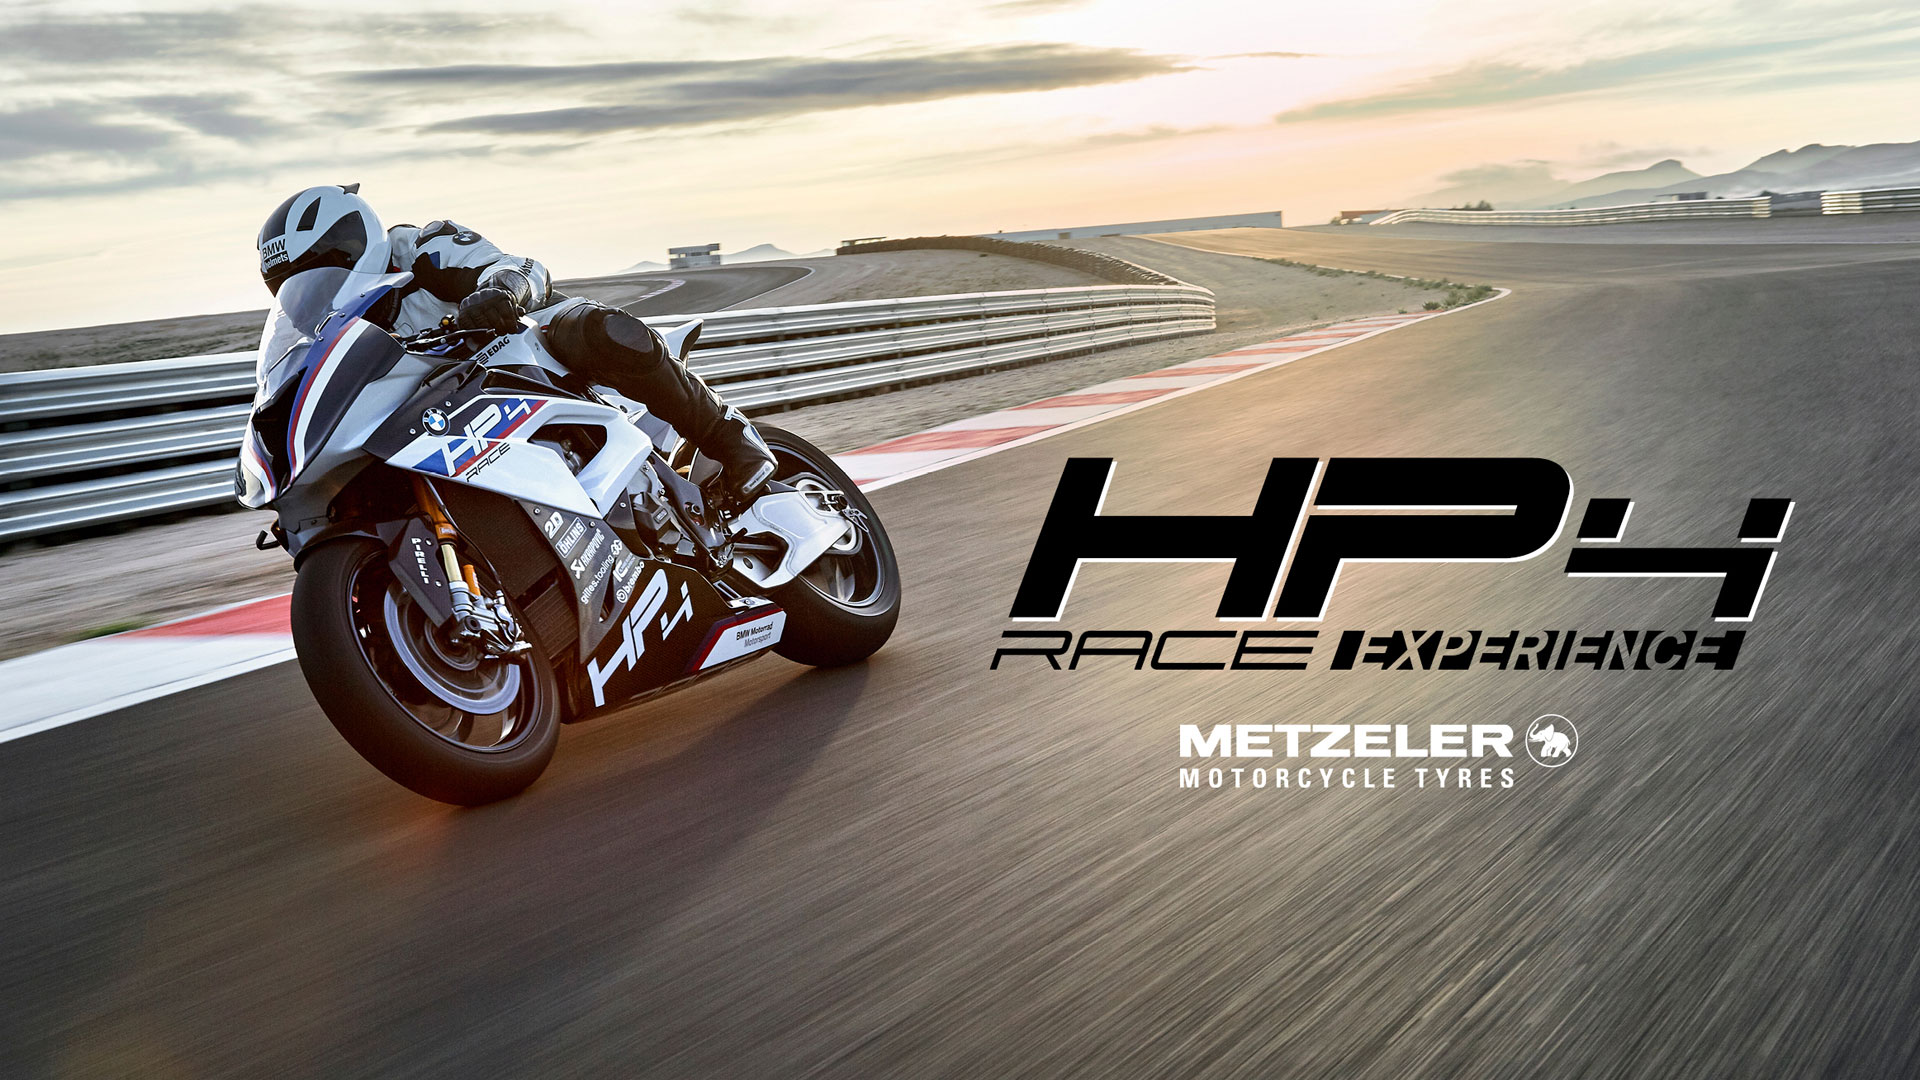 The BMW Motorrad Track Experience Programme will also invite select riders to test ride the HP4 RACE edition